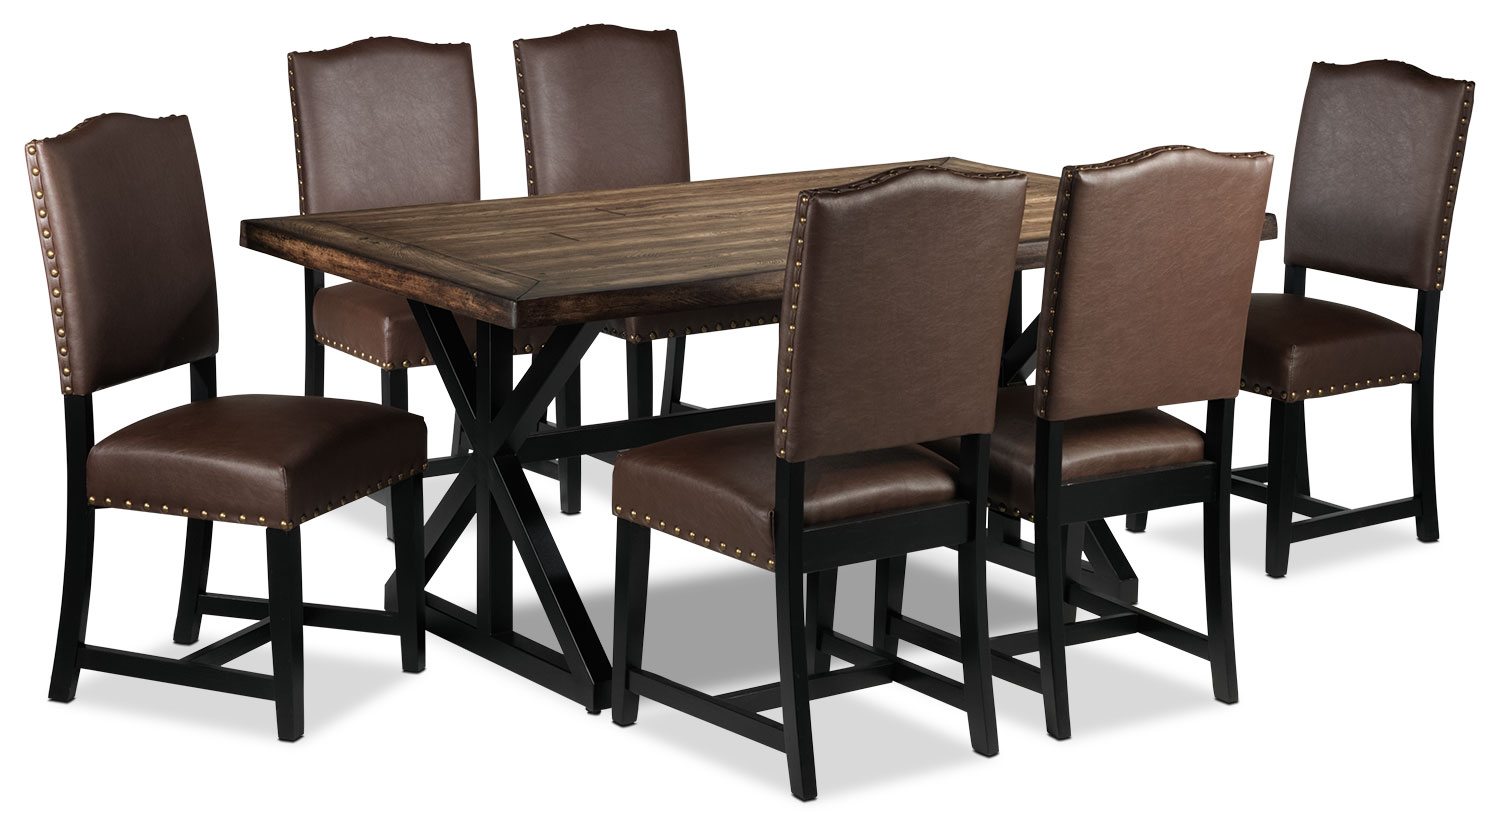 Mabel 7-Piece Dining Set - Honey and Brown